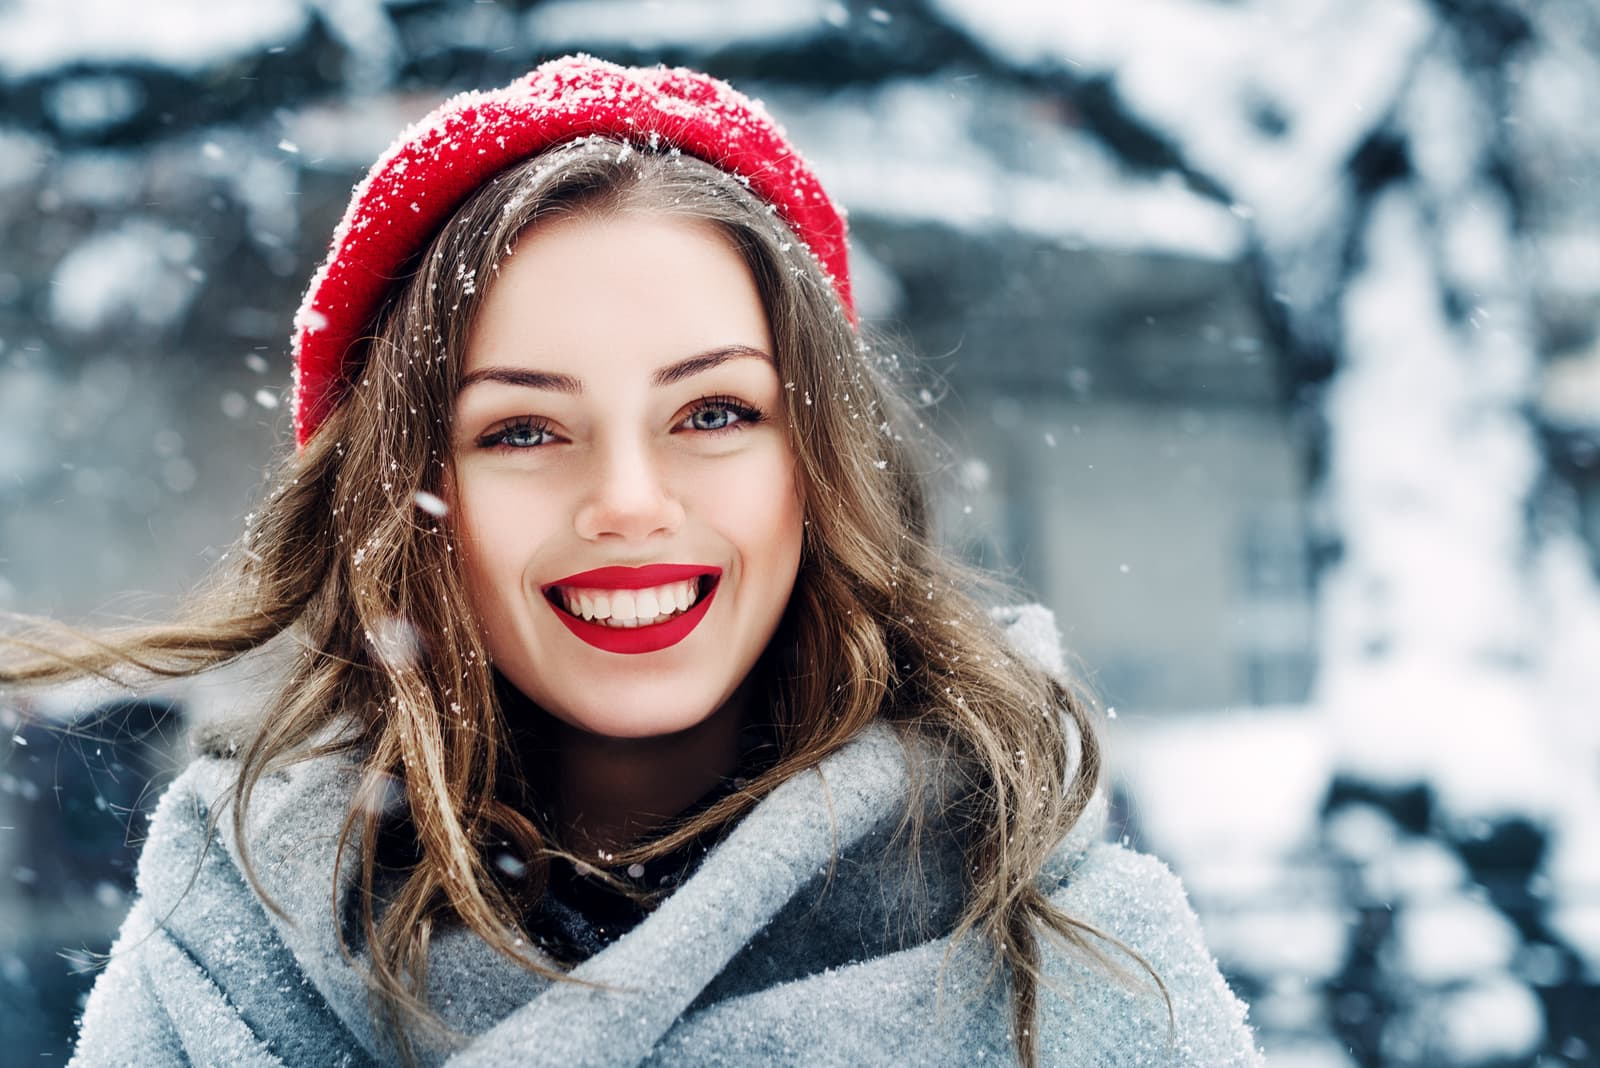 a beautiful smiling brunette with a red cap on her head is standing outside in the snow